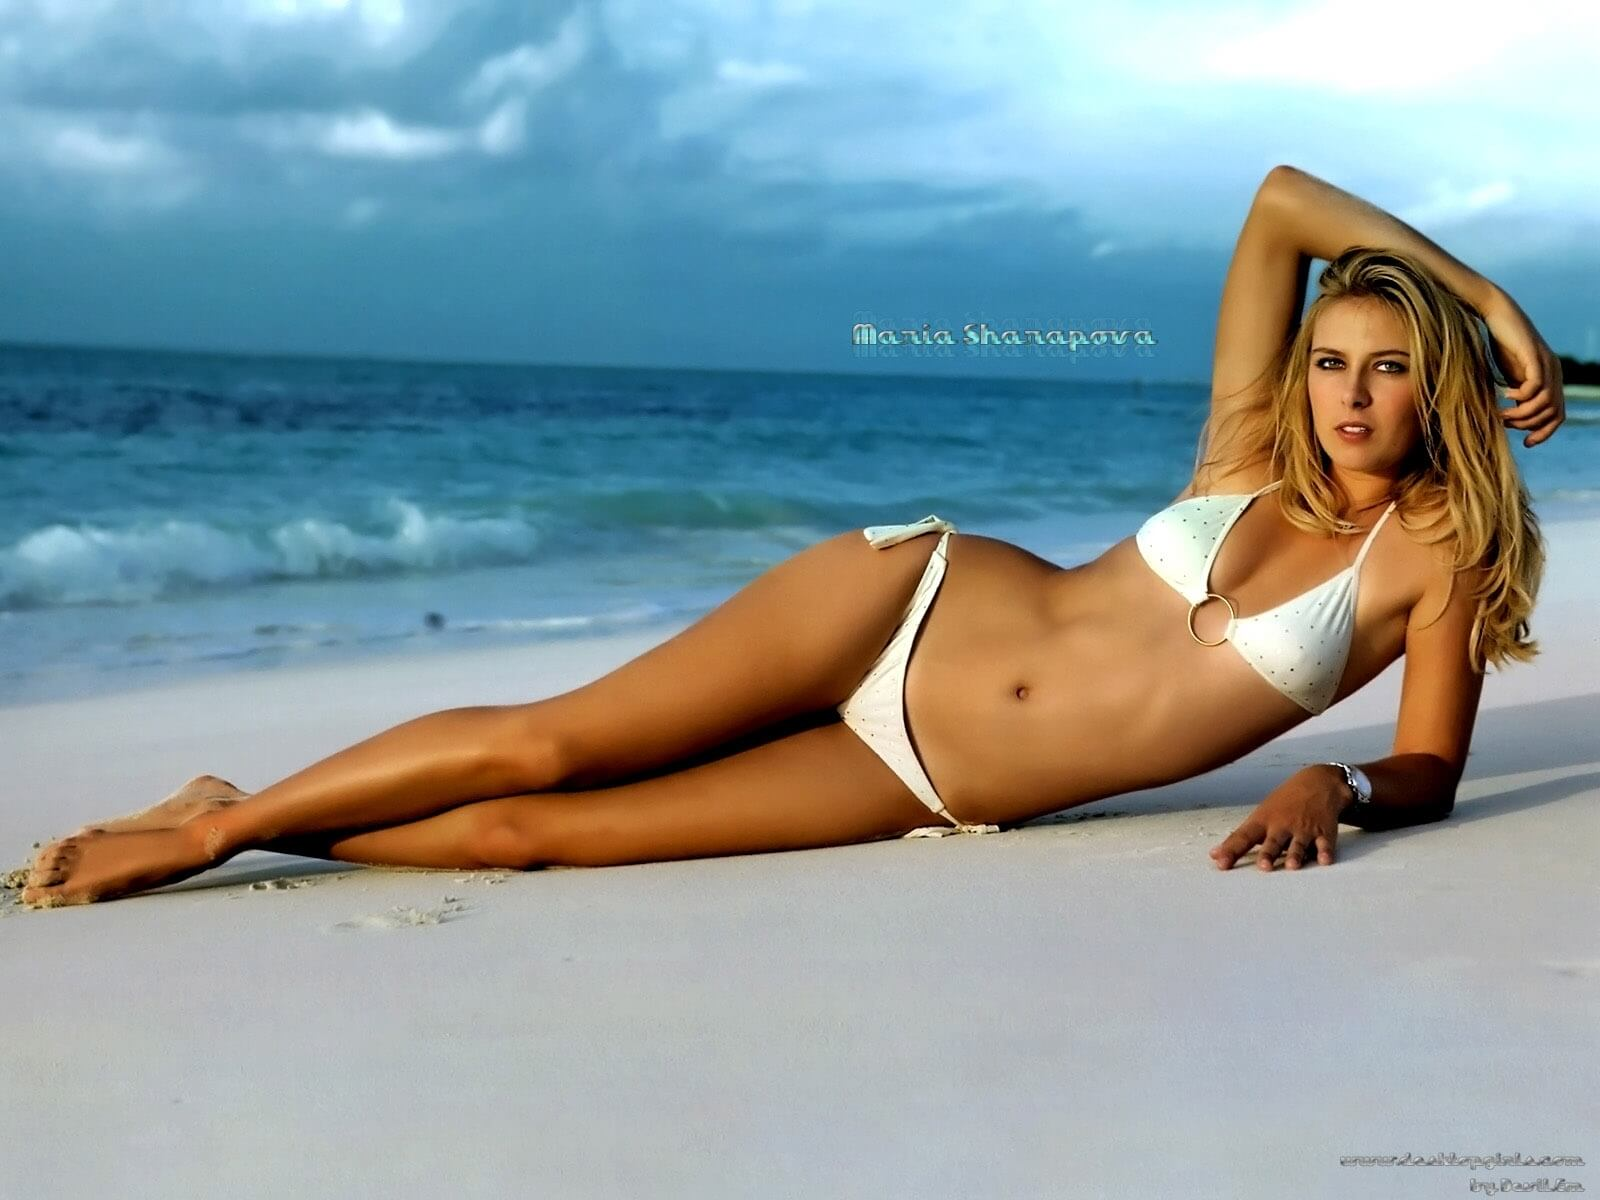 Maria Sharapova sexy bikini photo